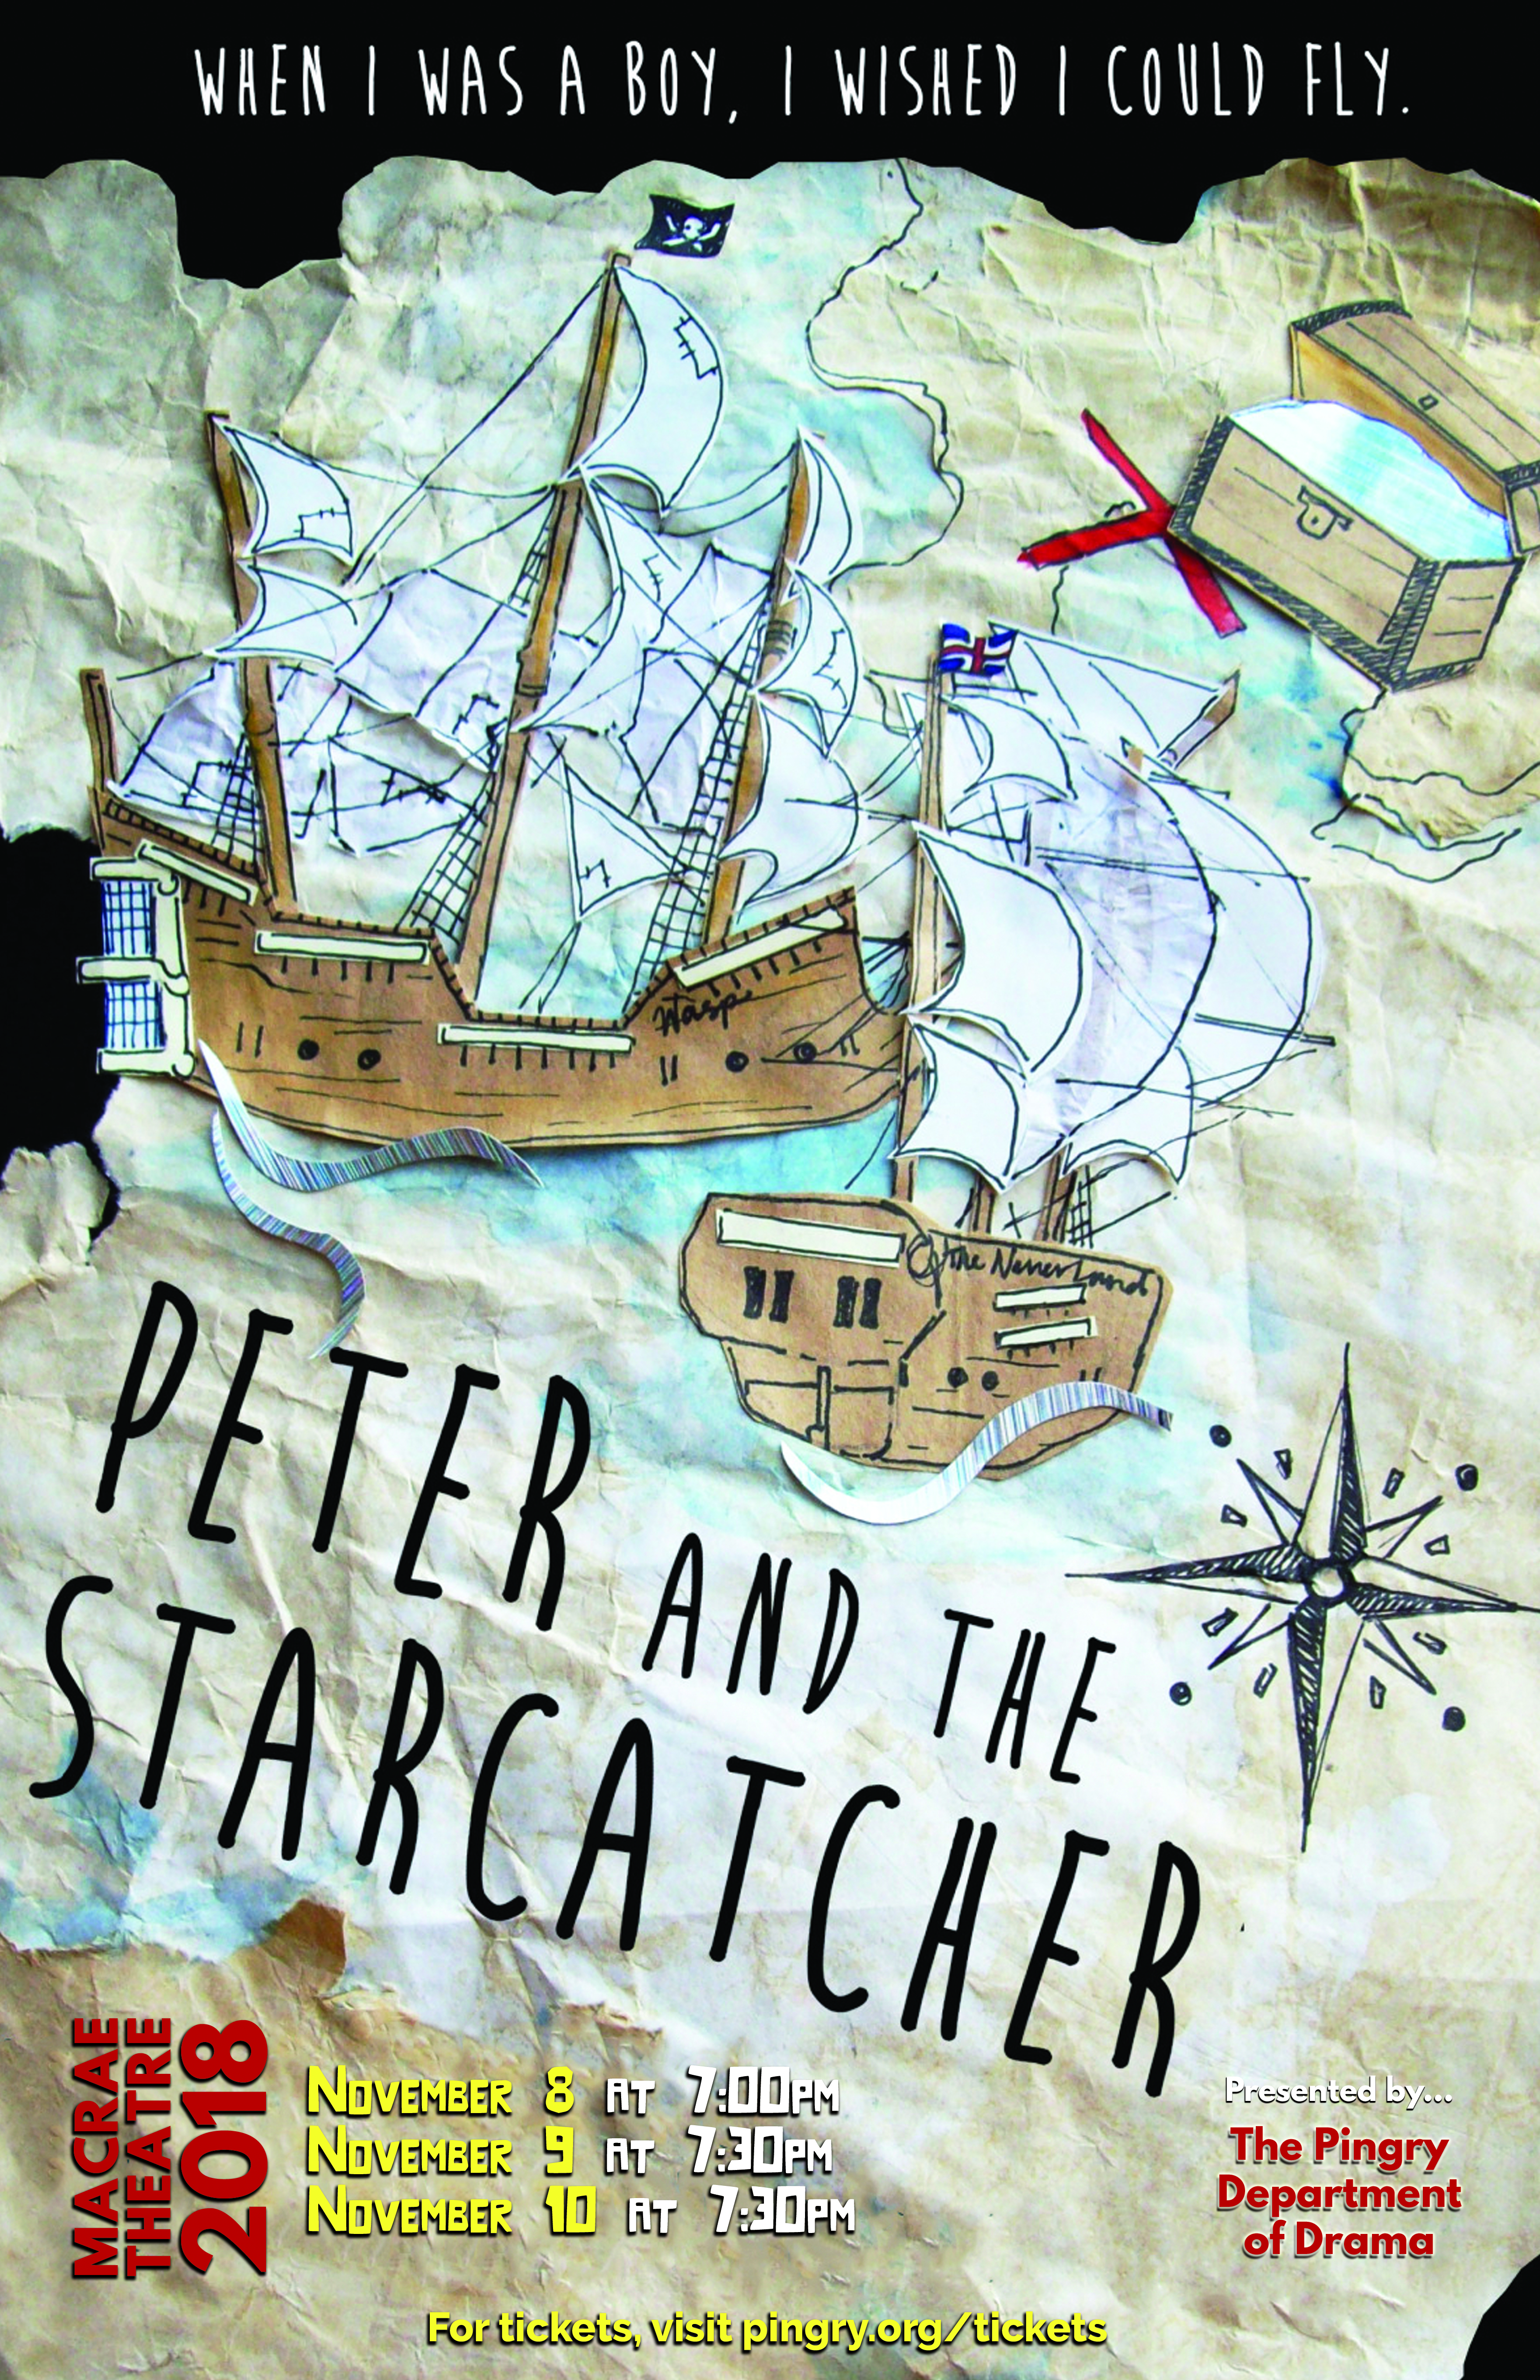 Peter and the Starcatcher - Tickets On Sale Now!   News Details